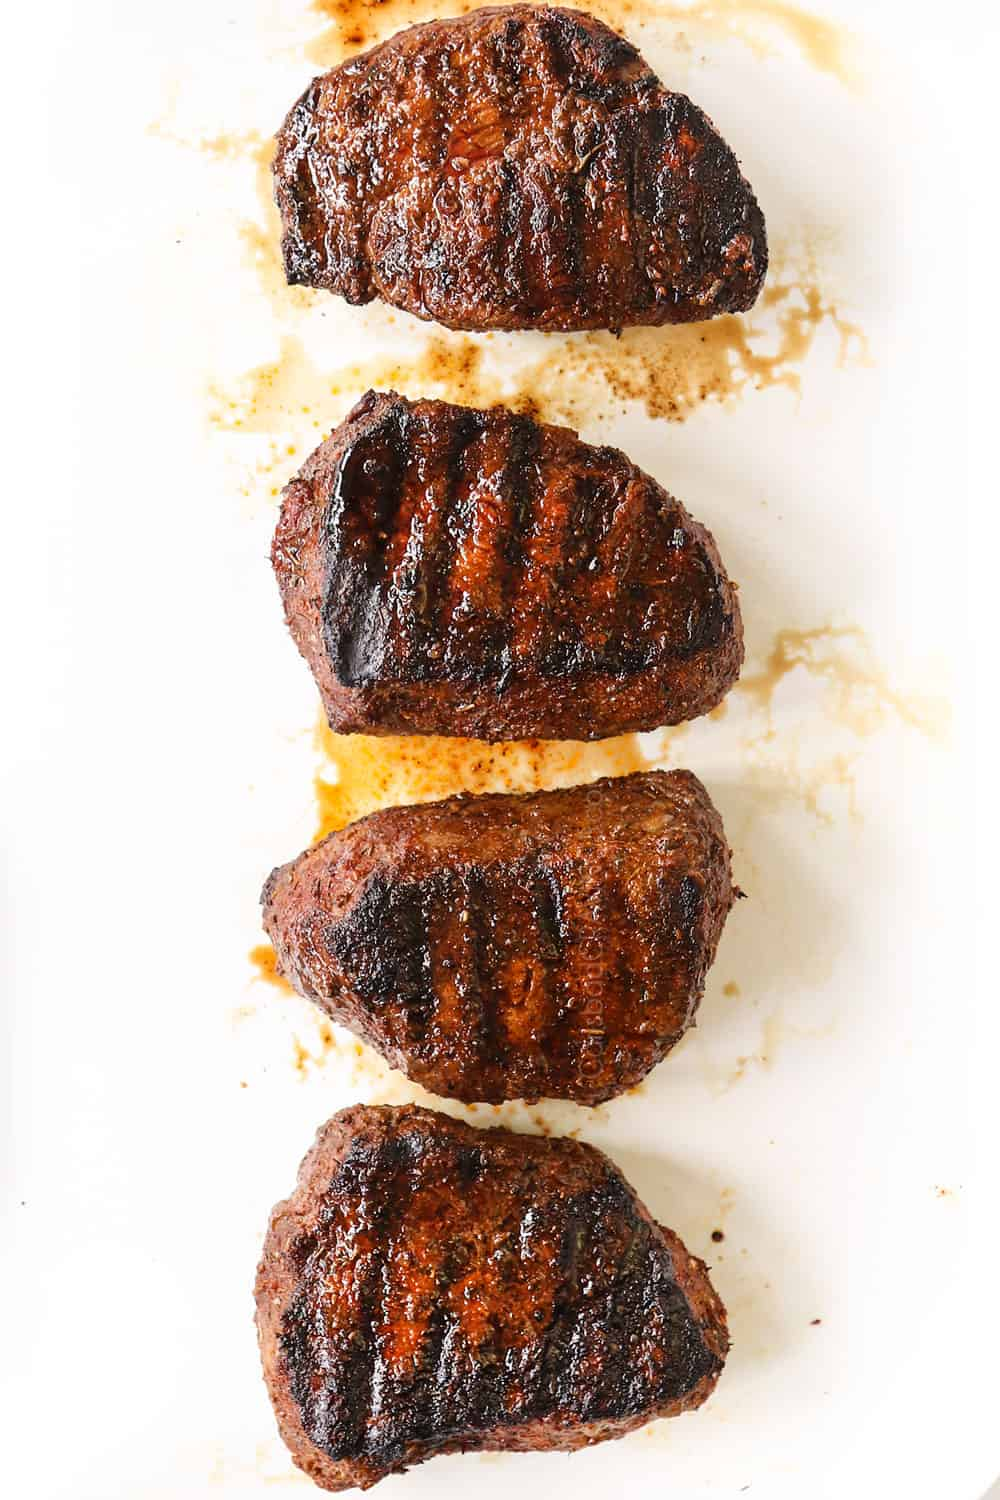 showing how to grill steak by letting sirloin steak rest